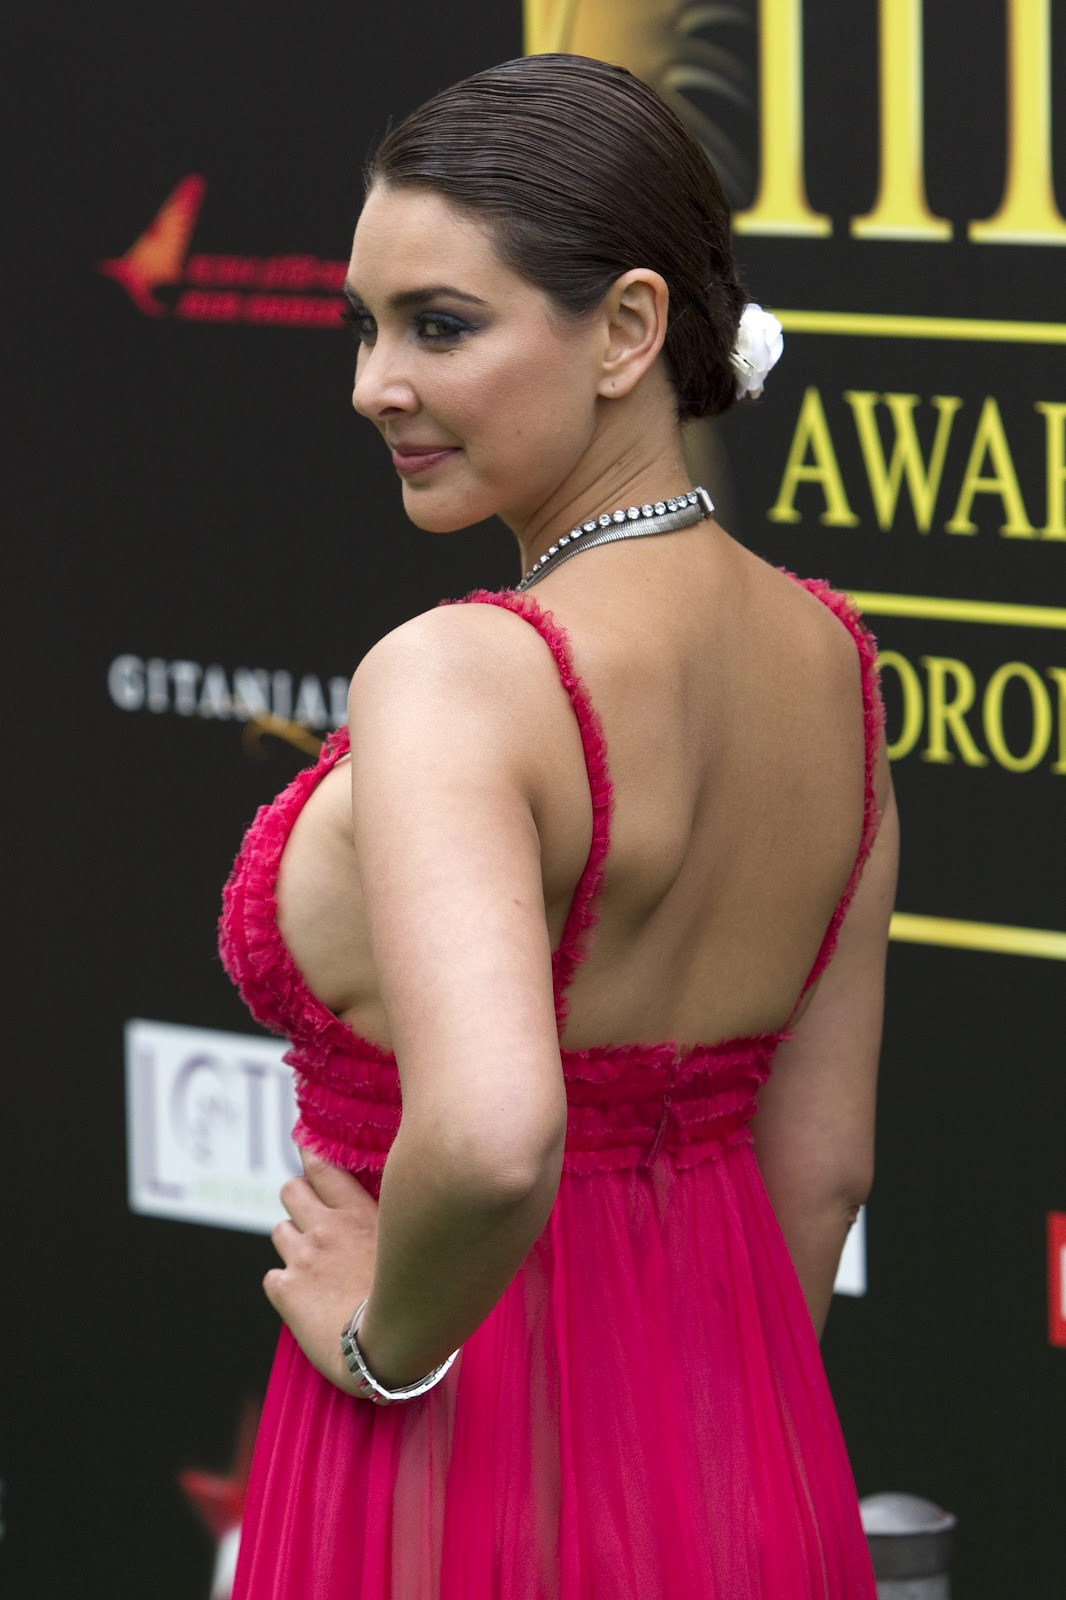 Bollywood sexiest navel and body show compilation - 1 3